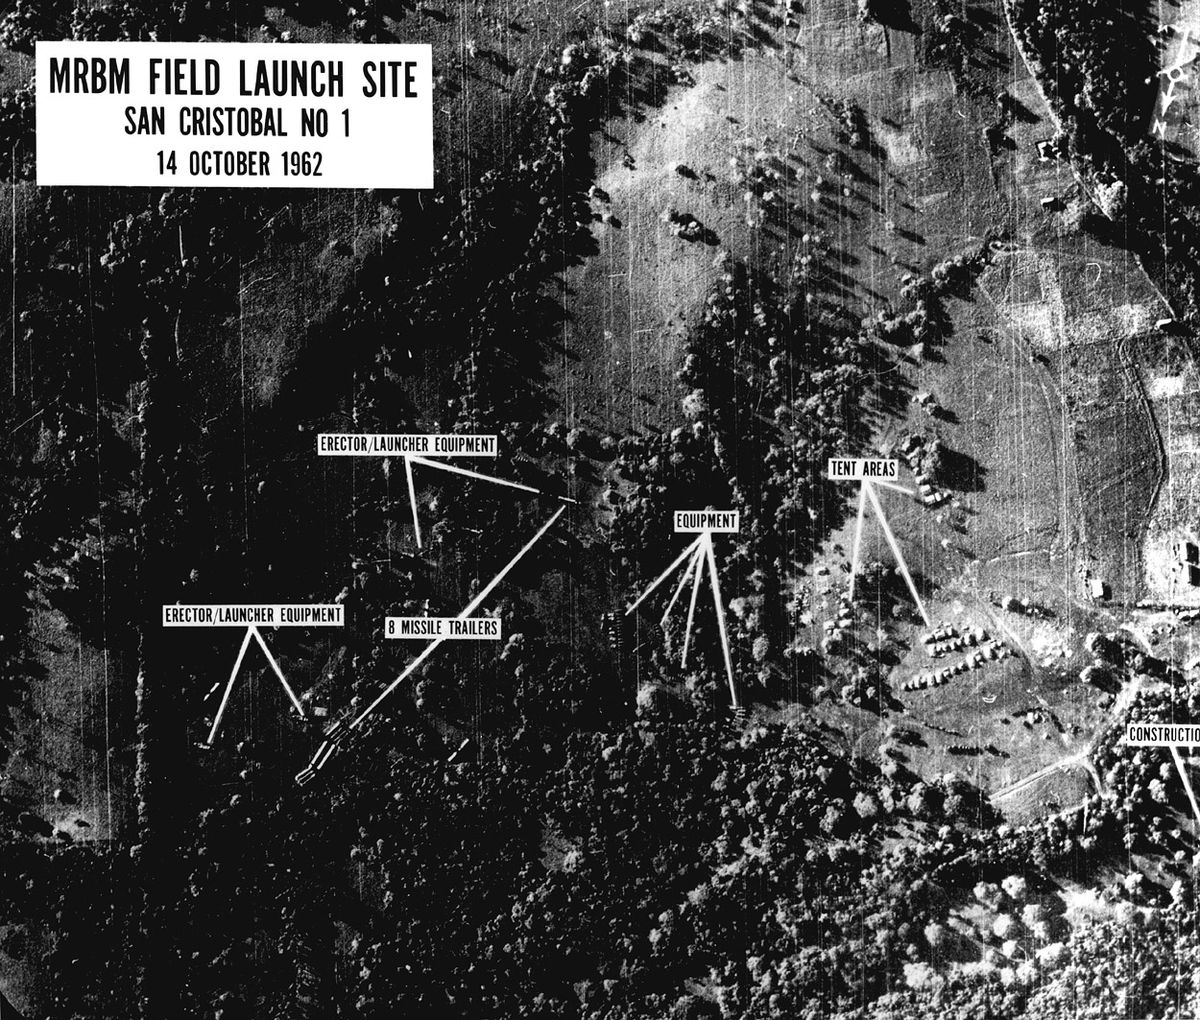 thirteen days the cuban missile crisis During the thirteen days in october 1962 when the united states confronted the soviet union over its installation of missiles in cuba, few people shared the behind.